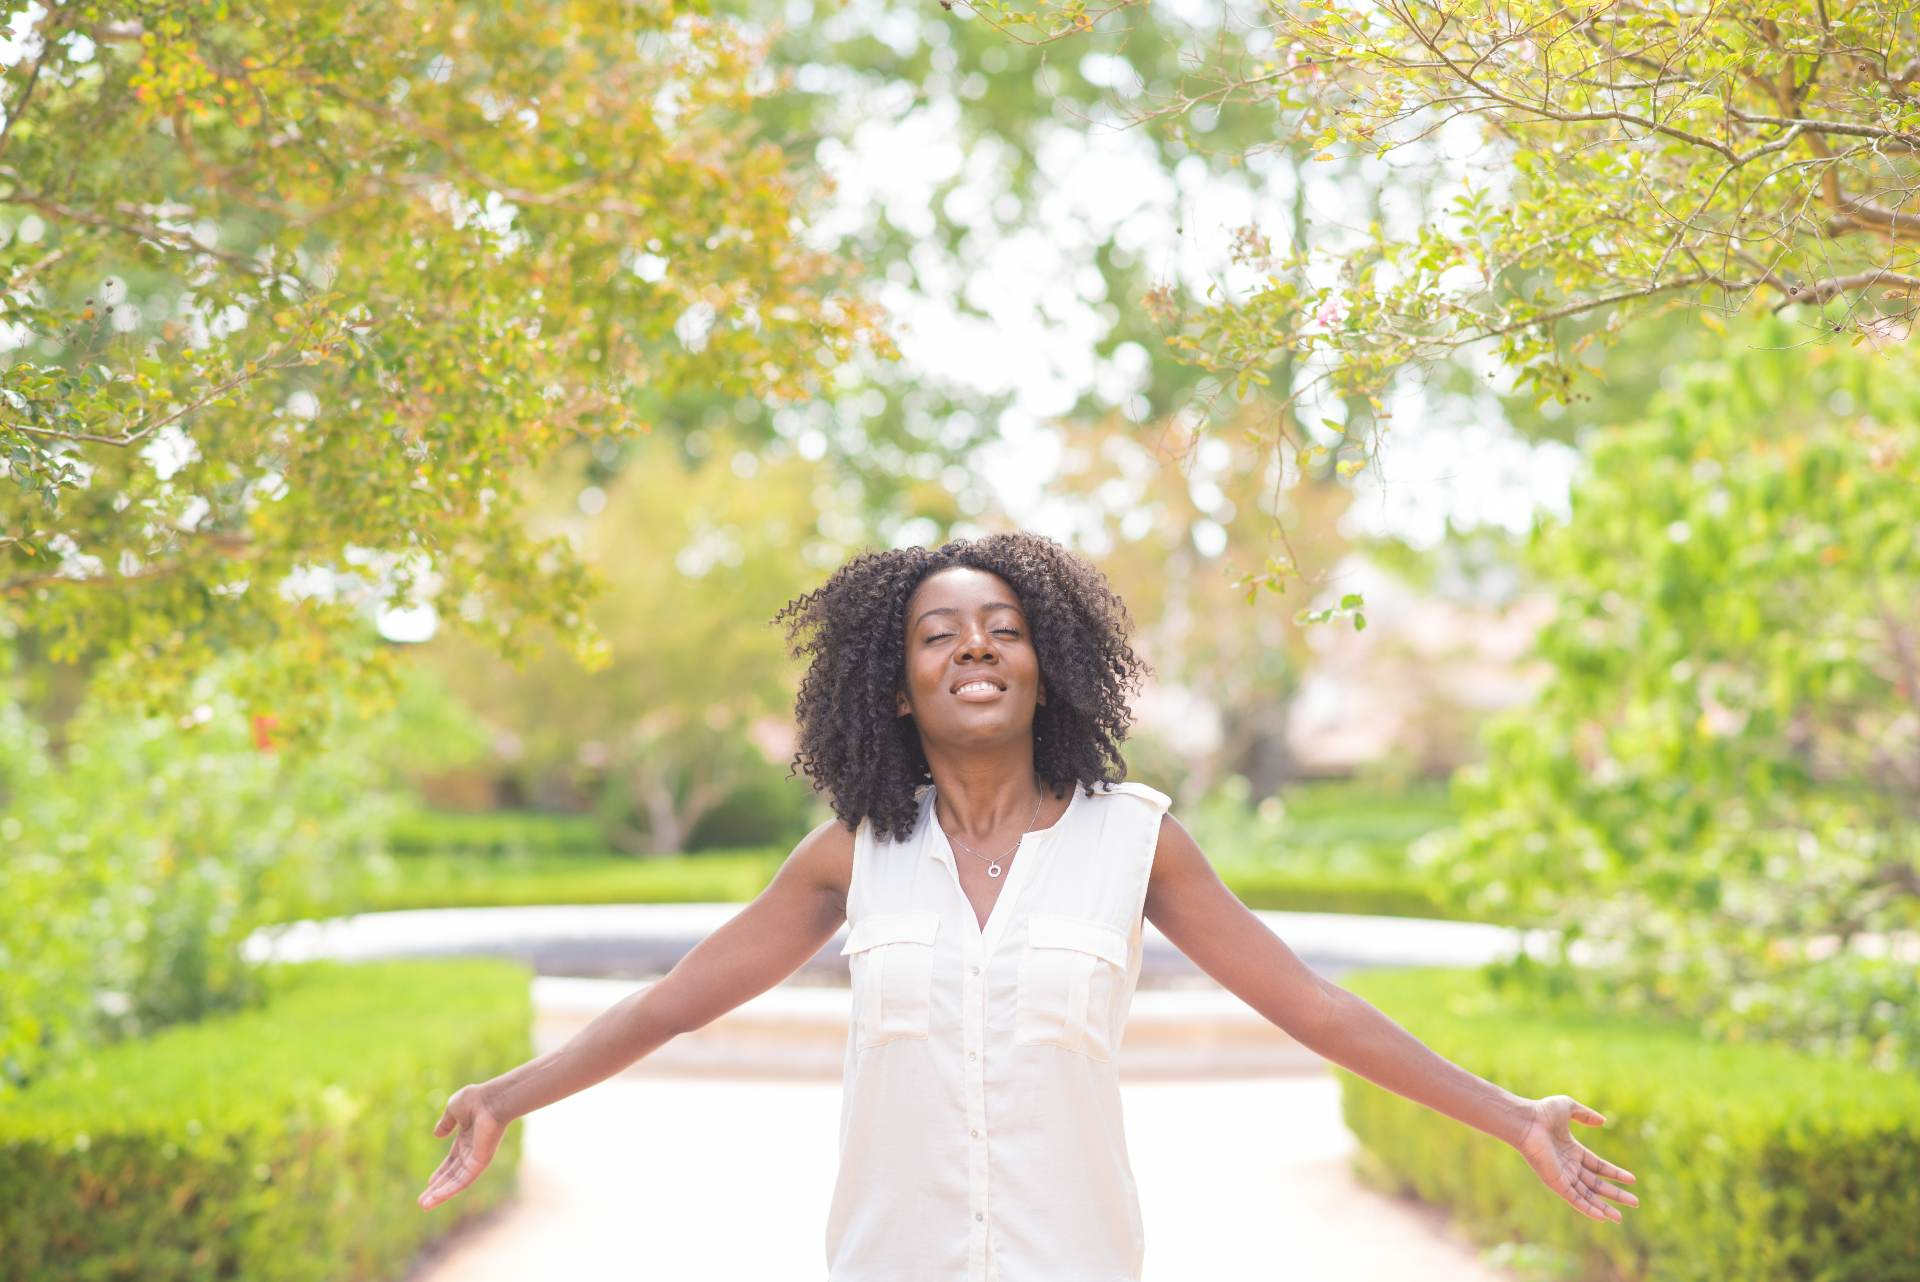 Smiling woman in a garden representing financial freedom